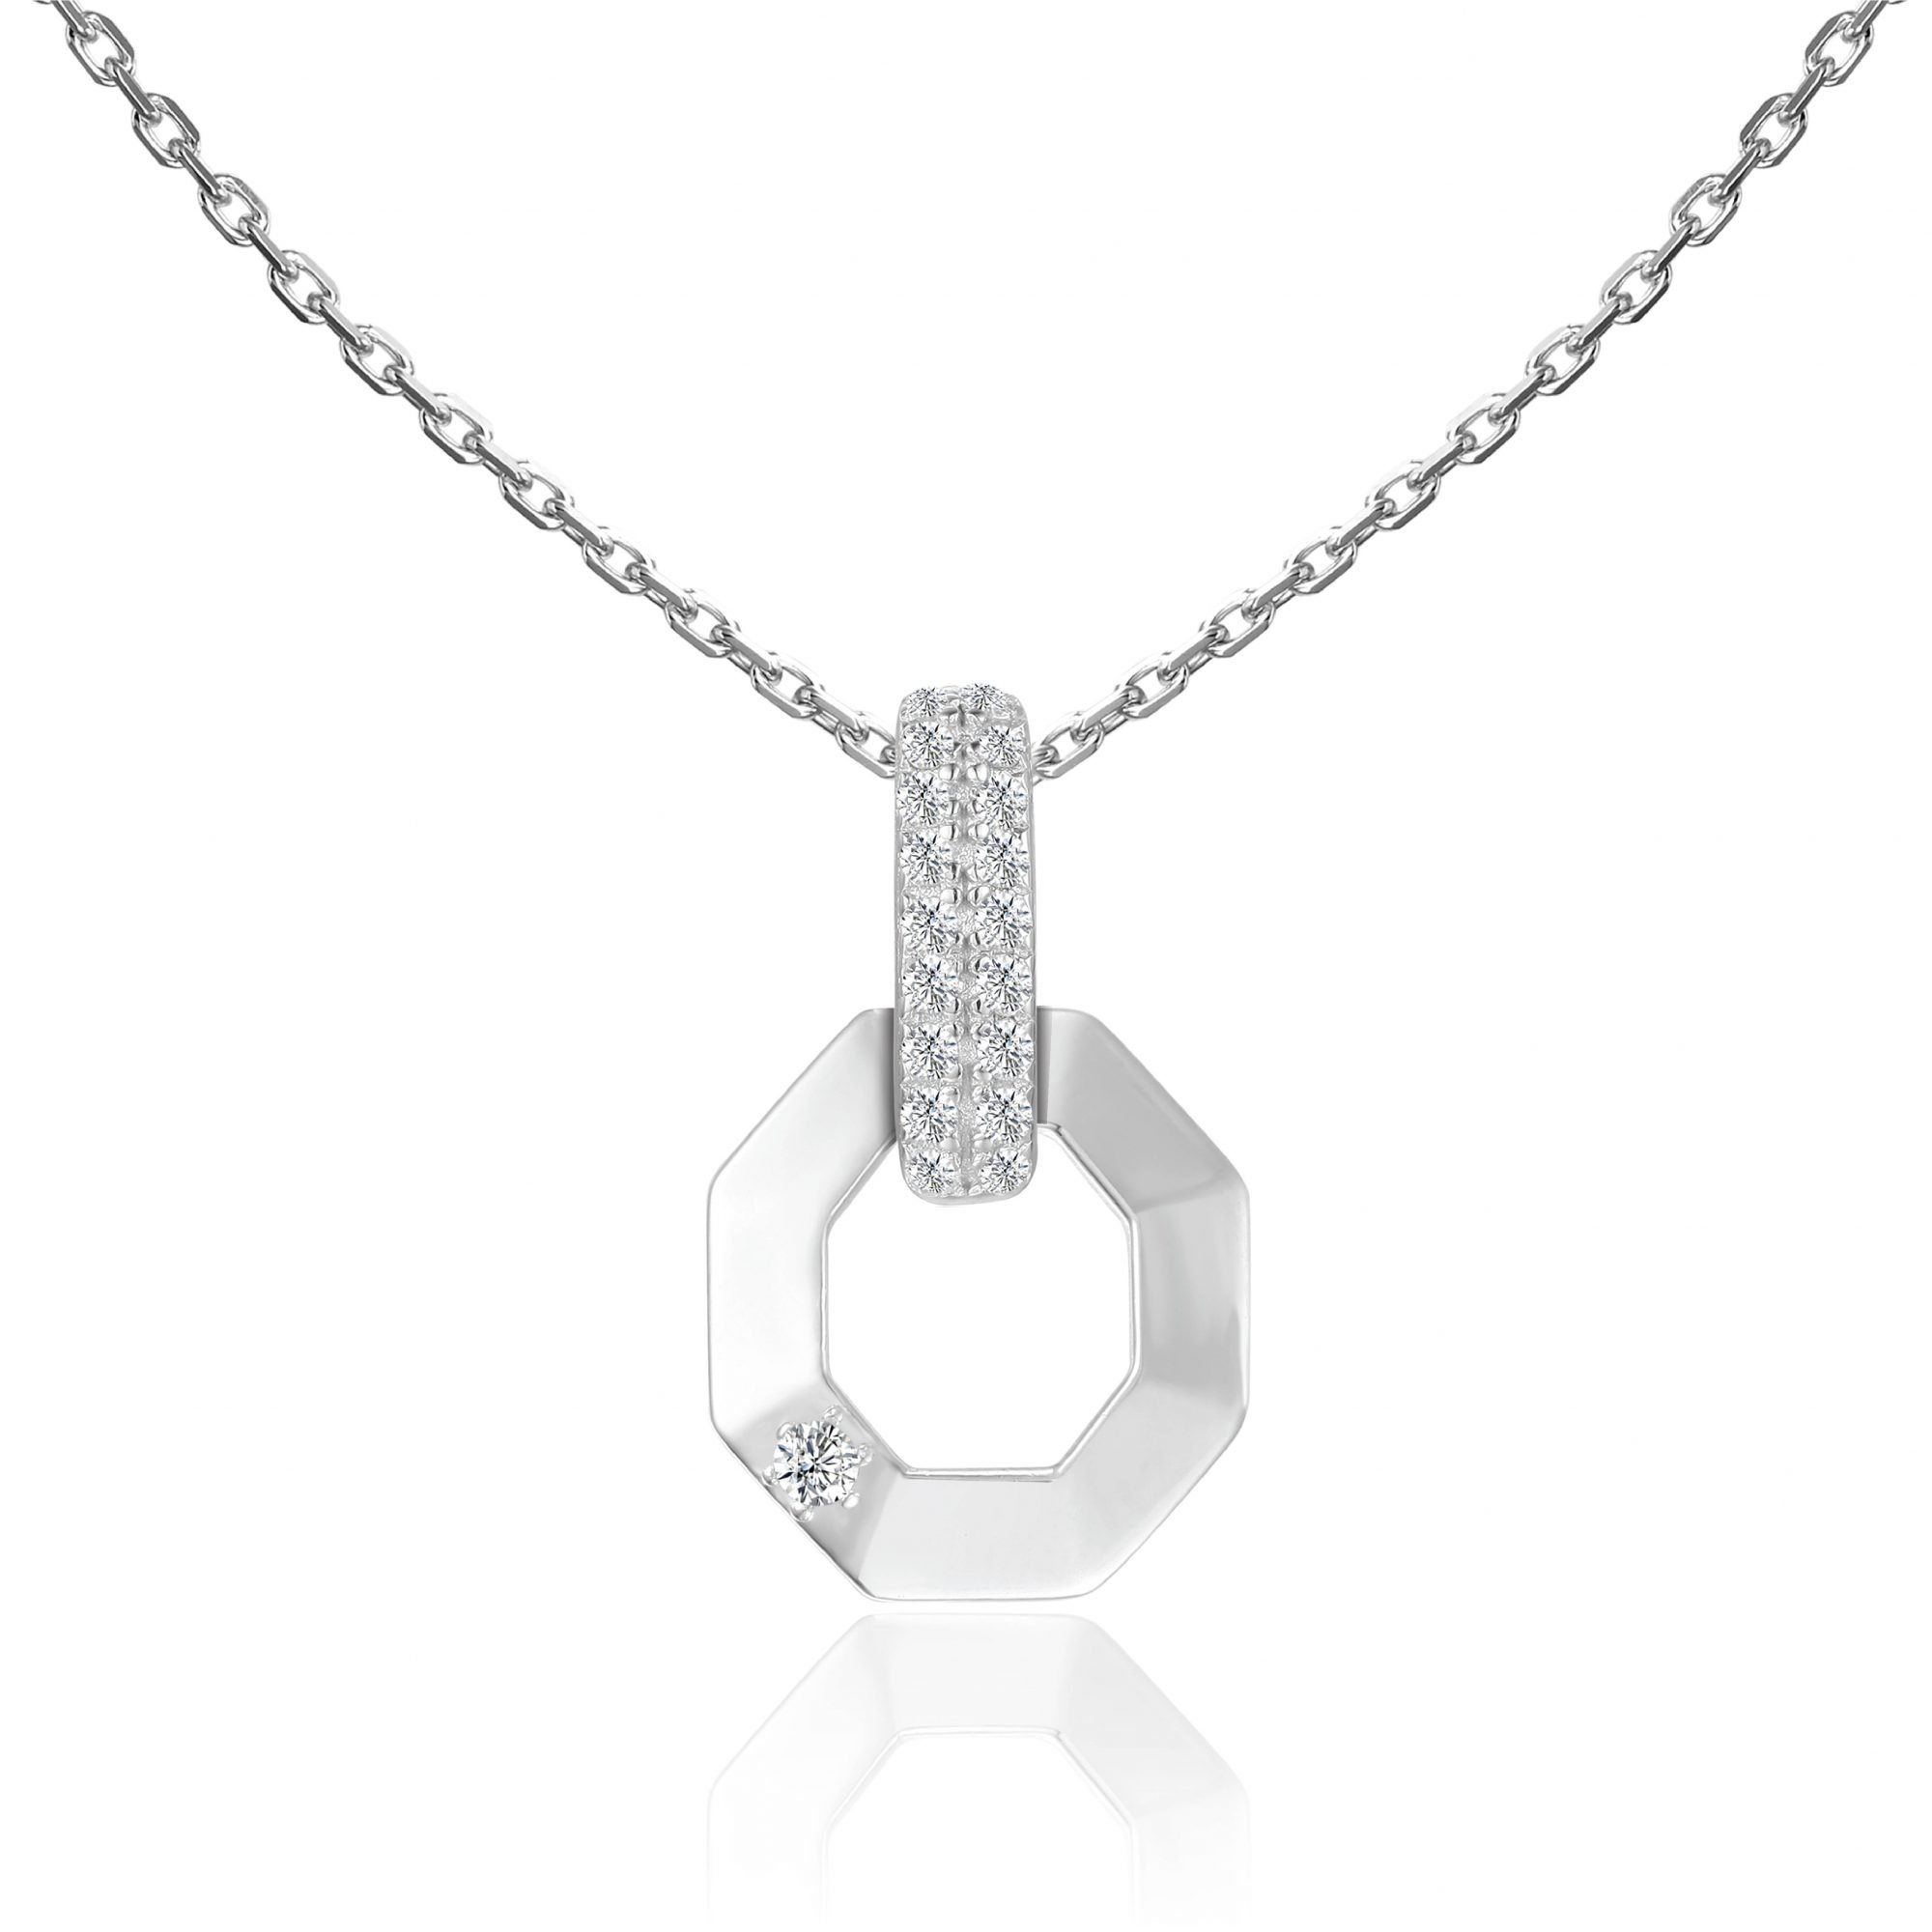 """VIKTOR ALEXANDER 925 SILVER PENDANT JEWELLERY WHITE SAPPHIRE GEMSTONE WITH 18"""" 925 SILVER CHAIN CONNECTOR OCTAGON MOTIF"""